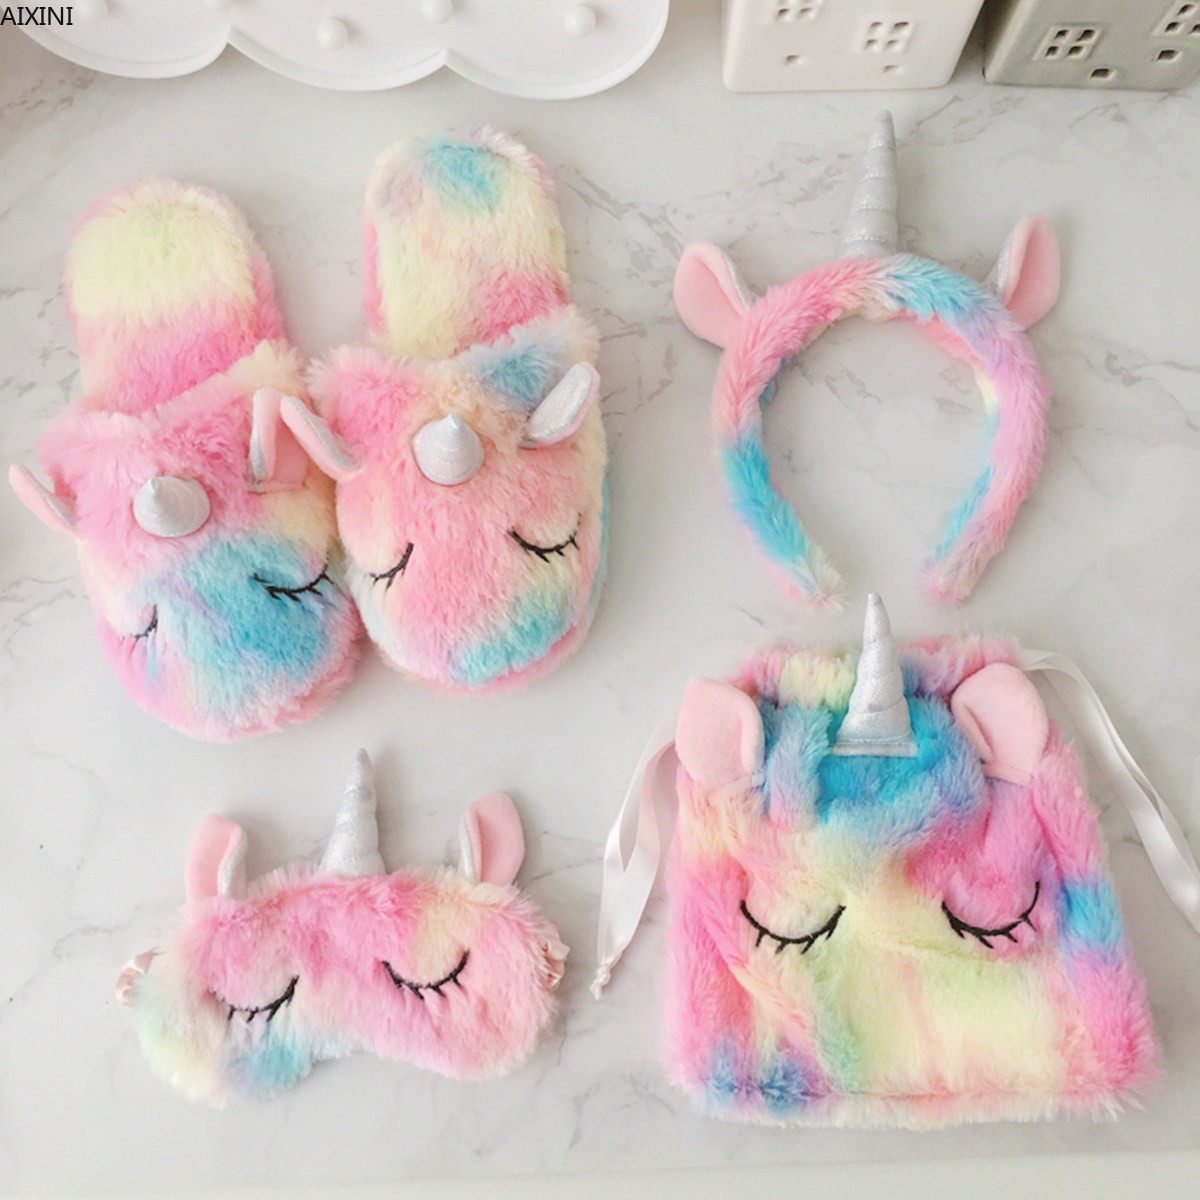 1pcs Sweet Unicorn Eyes Mask Headband Kawaii Animal Plush Cartoon Christmas Gift Stuffed Shoes Bag Toys for Children Plush Toys